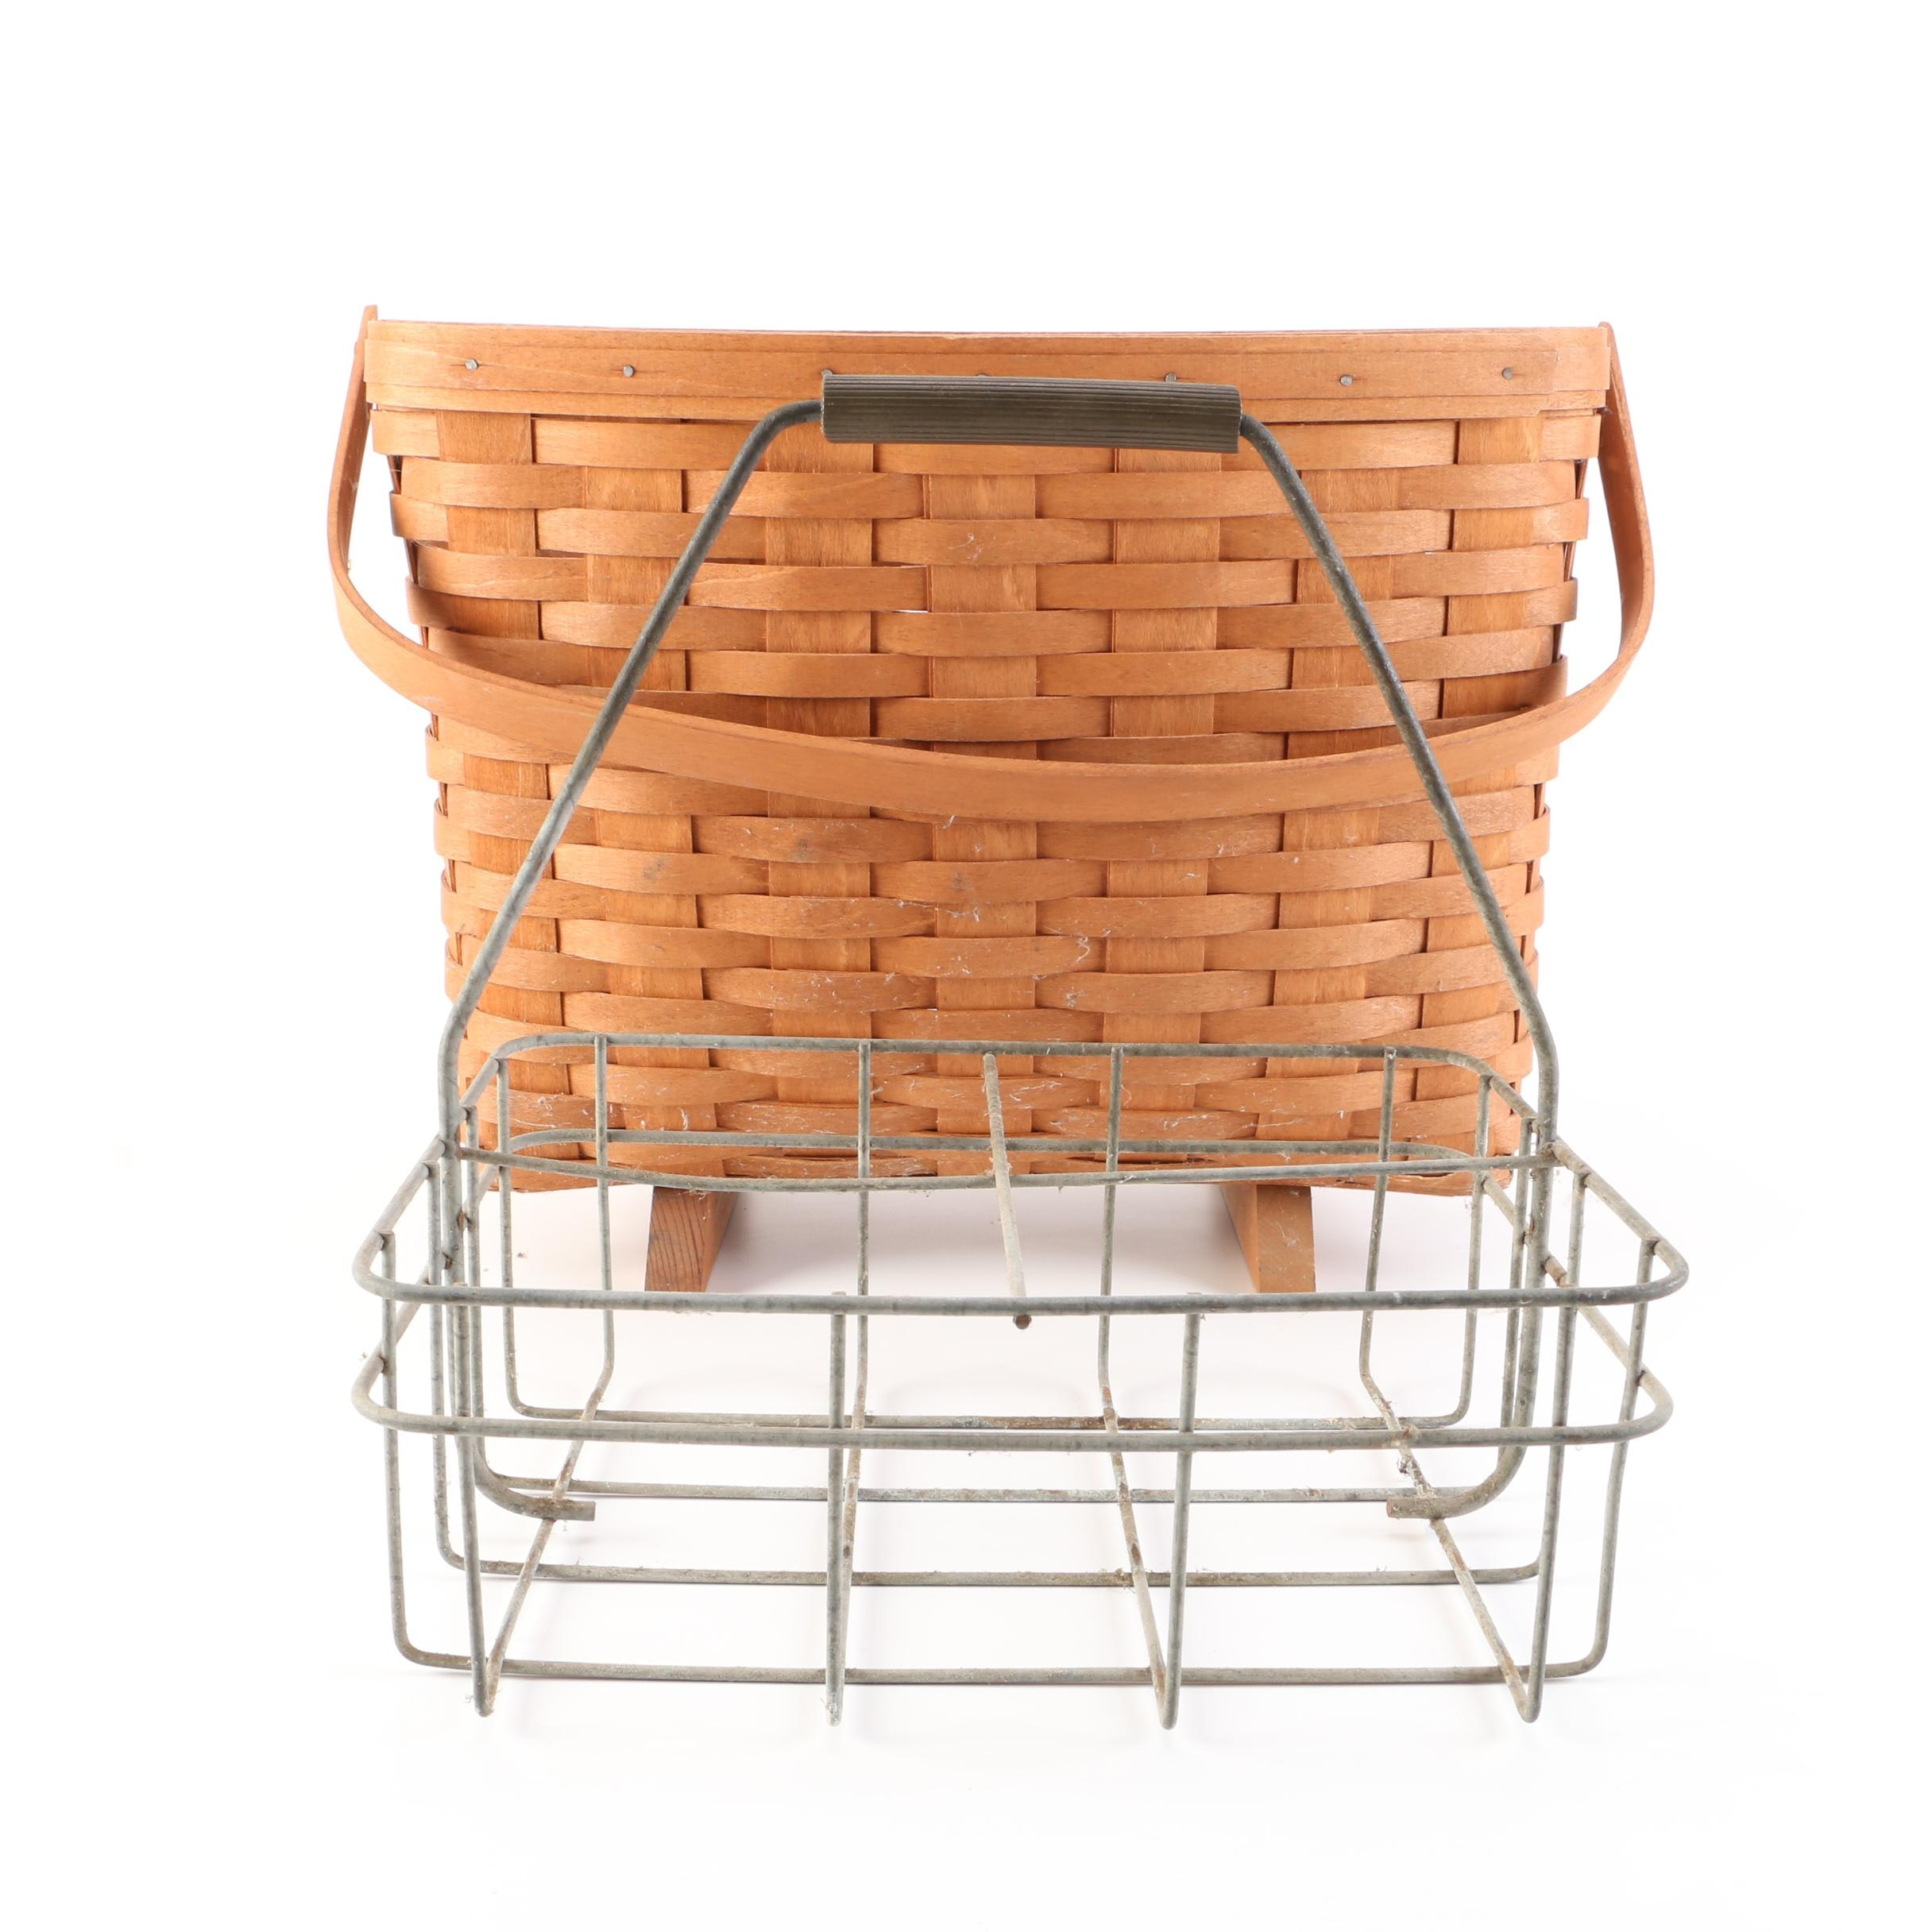 1989 Longaberger Basket and Wire Milk Caddy